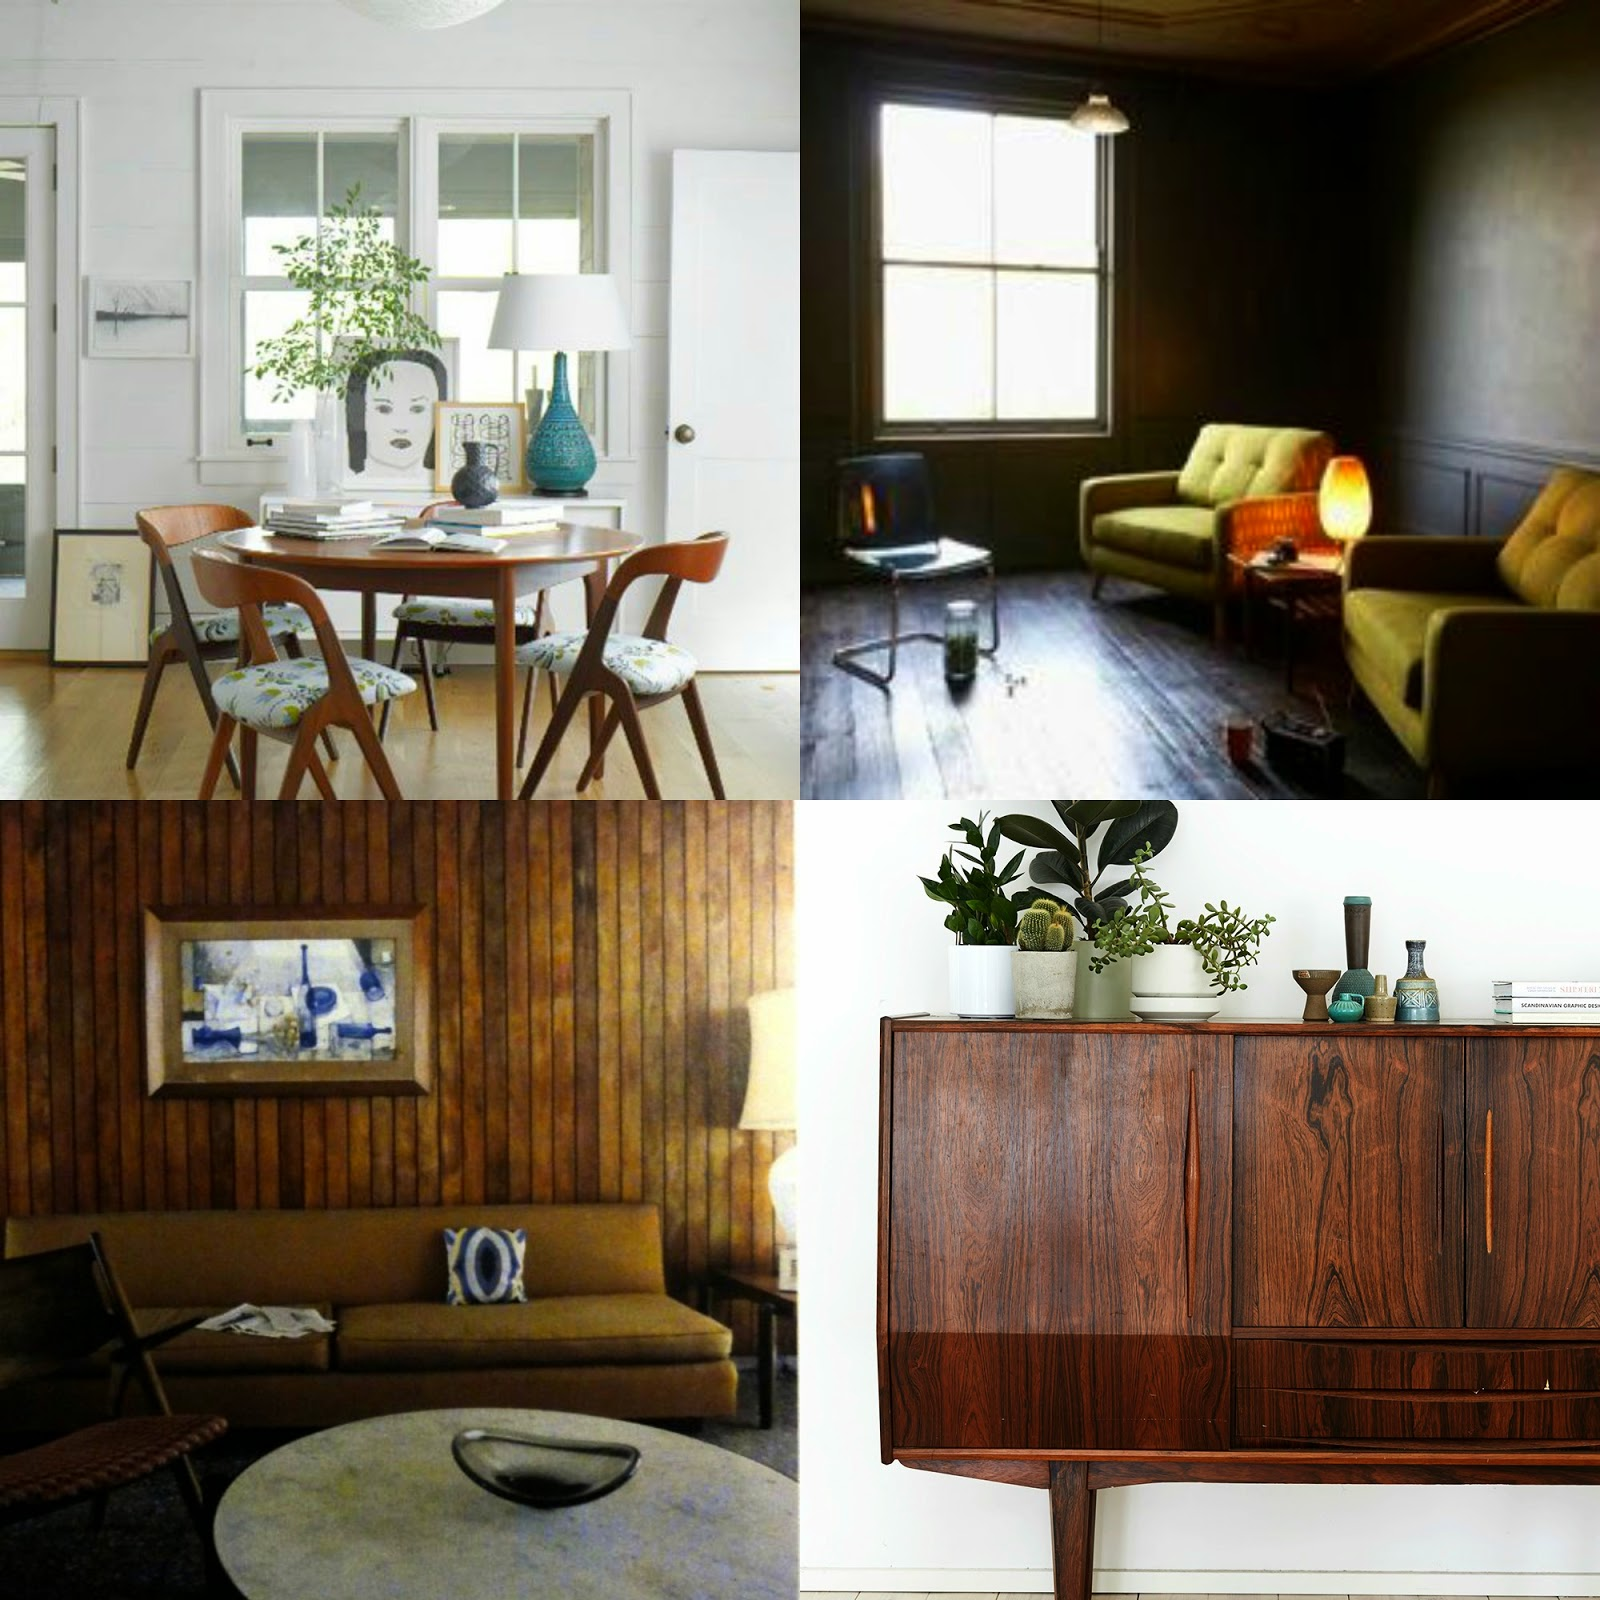 mid century modern inspired furniture. Friday Inspiration - Mid-Century Modern Style Mid Century Inspired Furniture